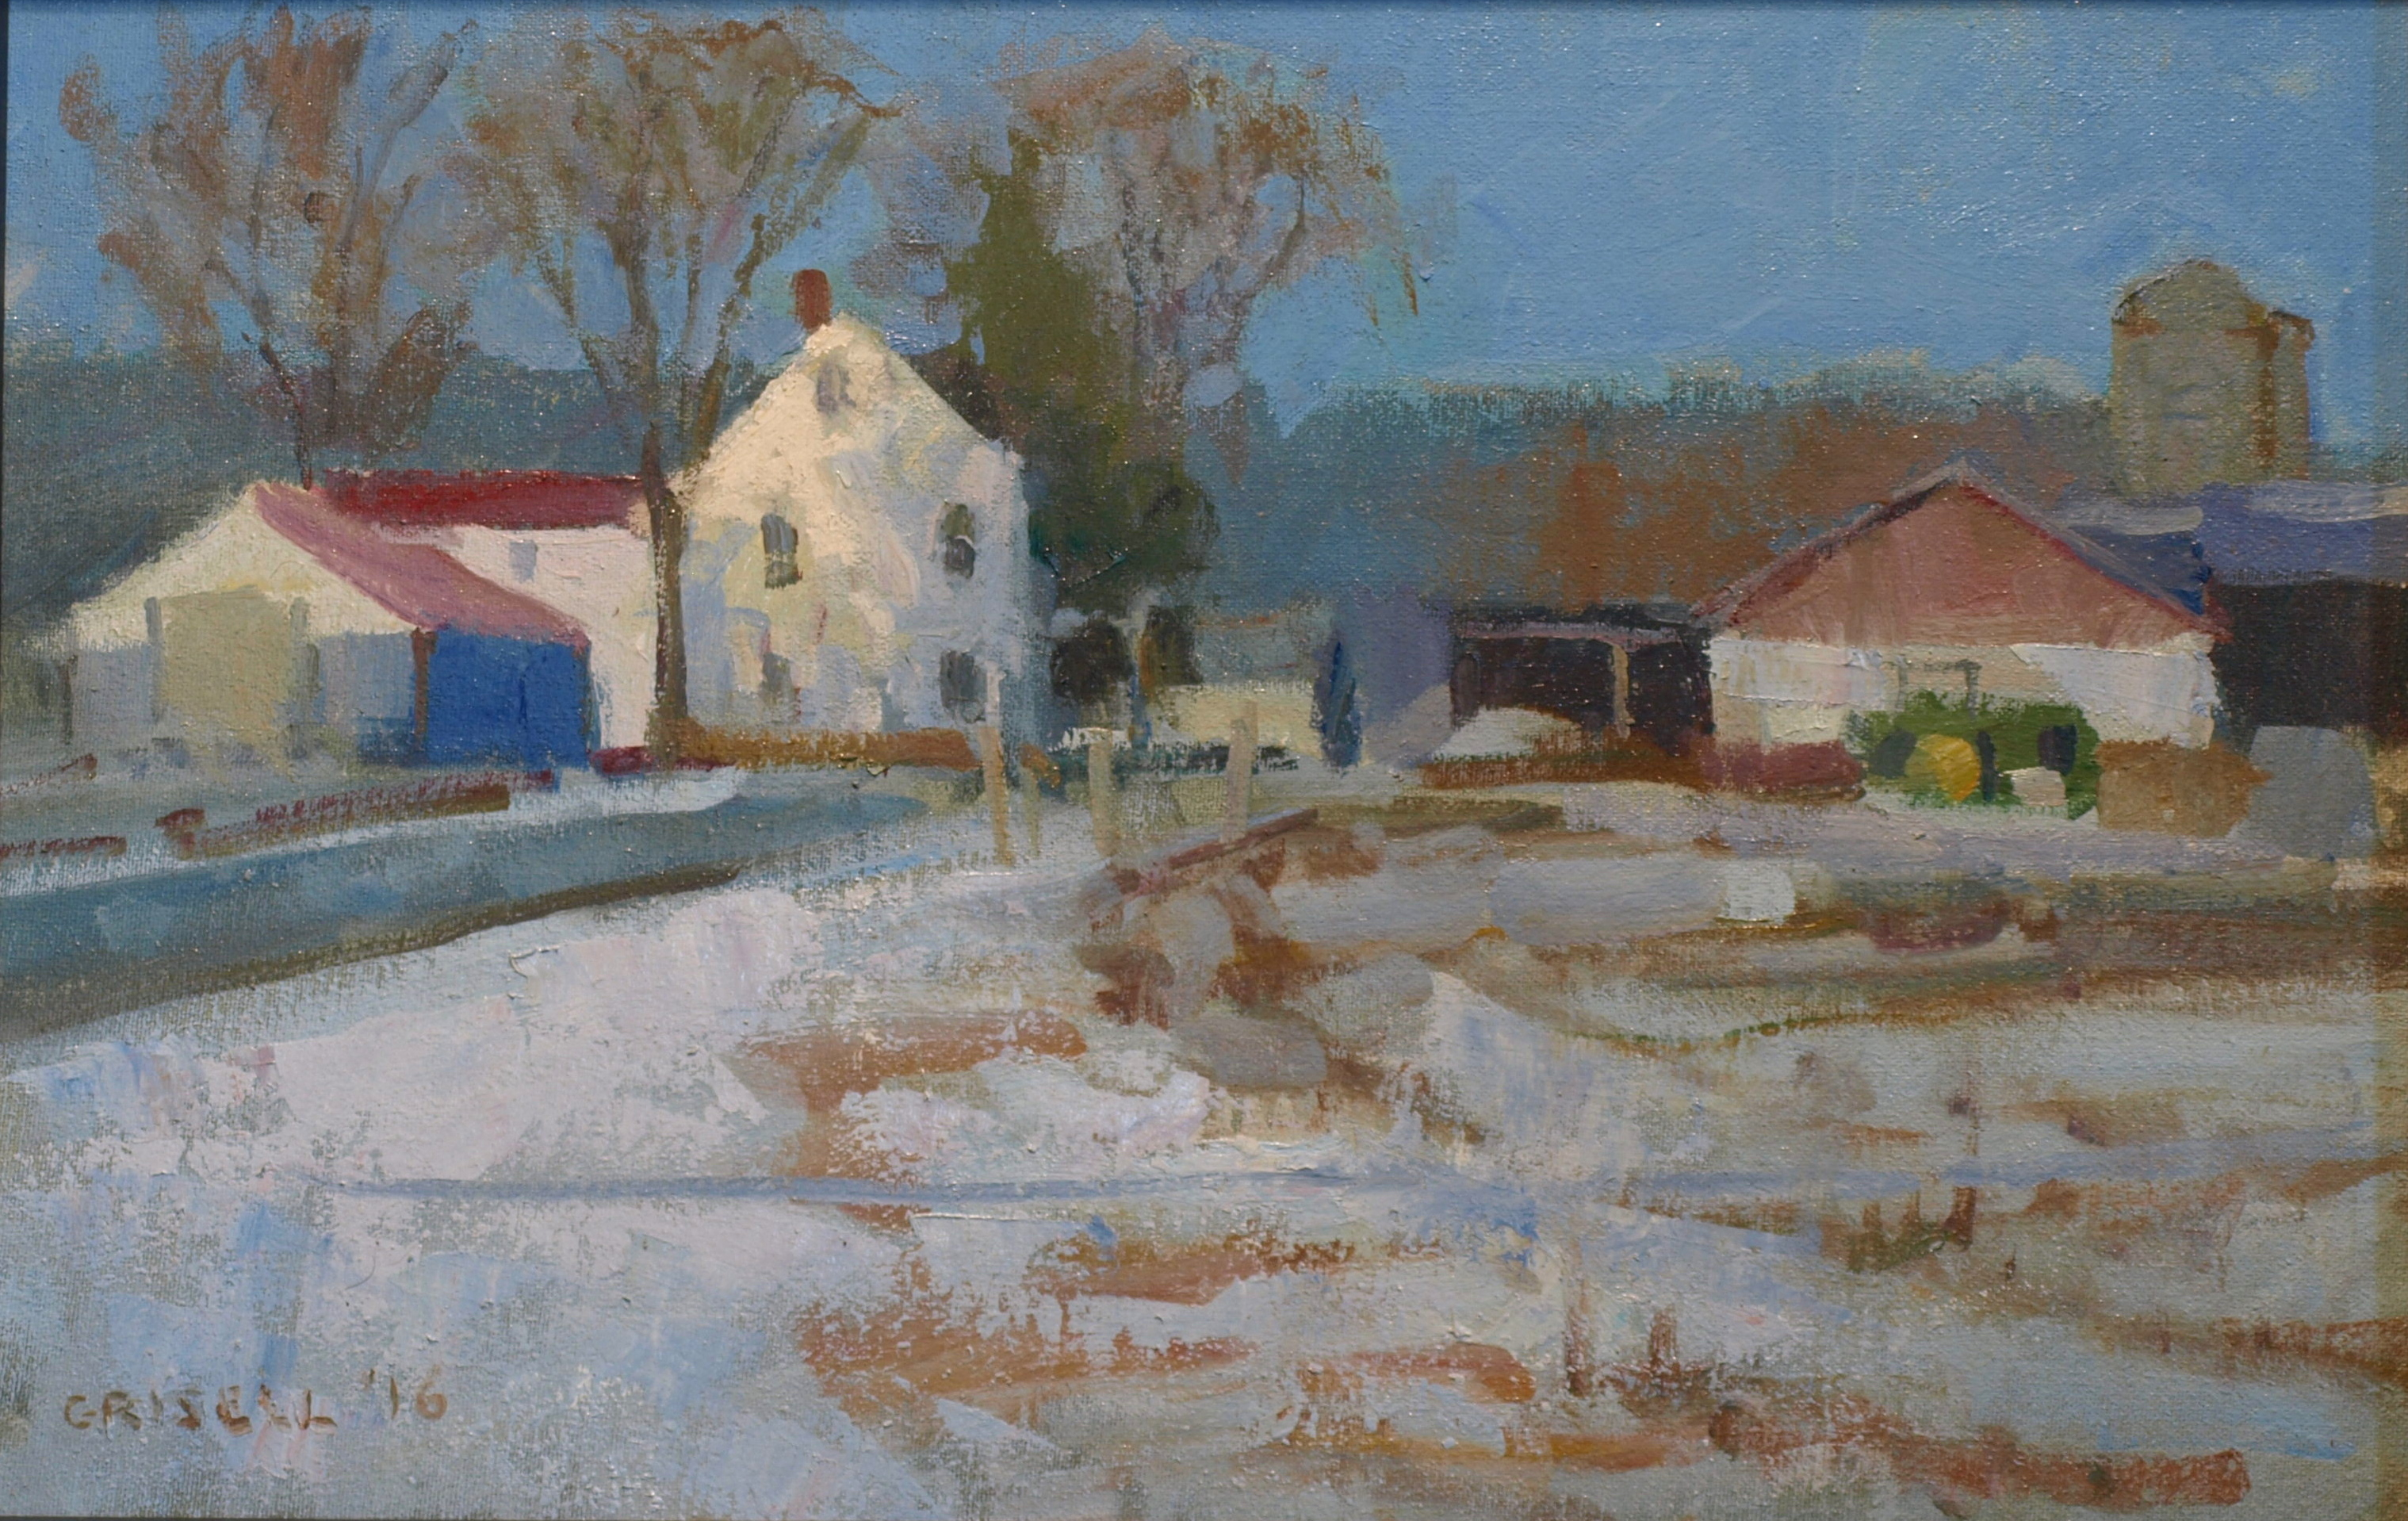 Farm in Snow, Oil on Canvas on Panel, 12 x 18 Inches, by Susan Grisell, $325